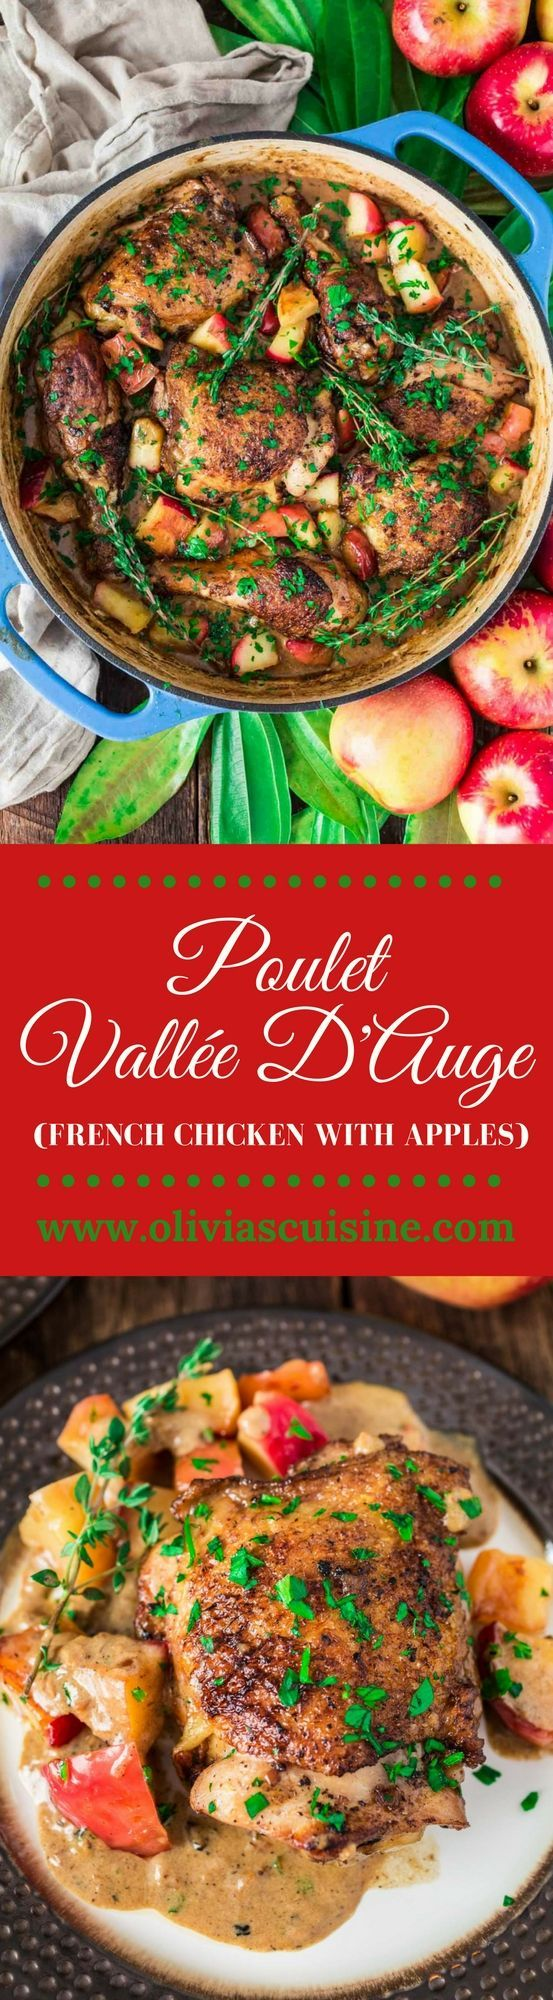 This Poulet Vallée D'Auge - a French classic - is proof that autumn's favorite fruit is good for more than pies and works great in savory dishes too. #SweeTangoSociety AD